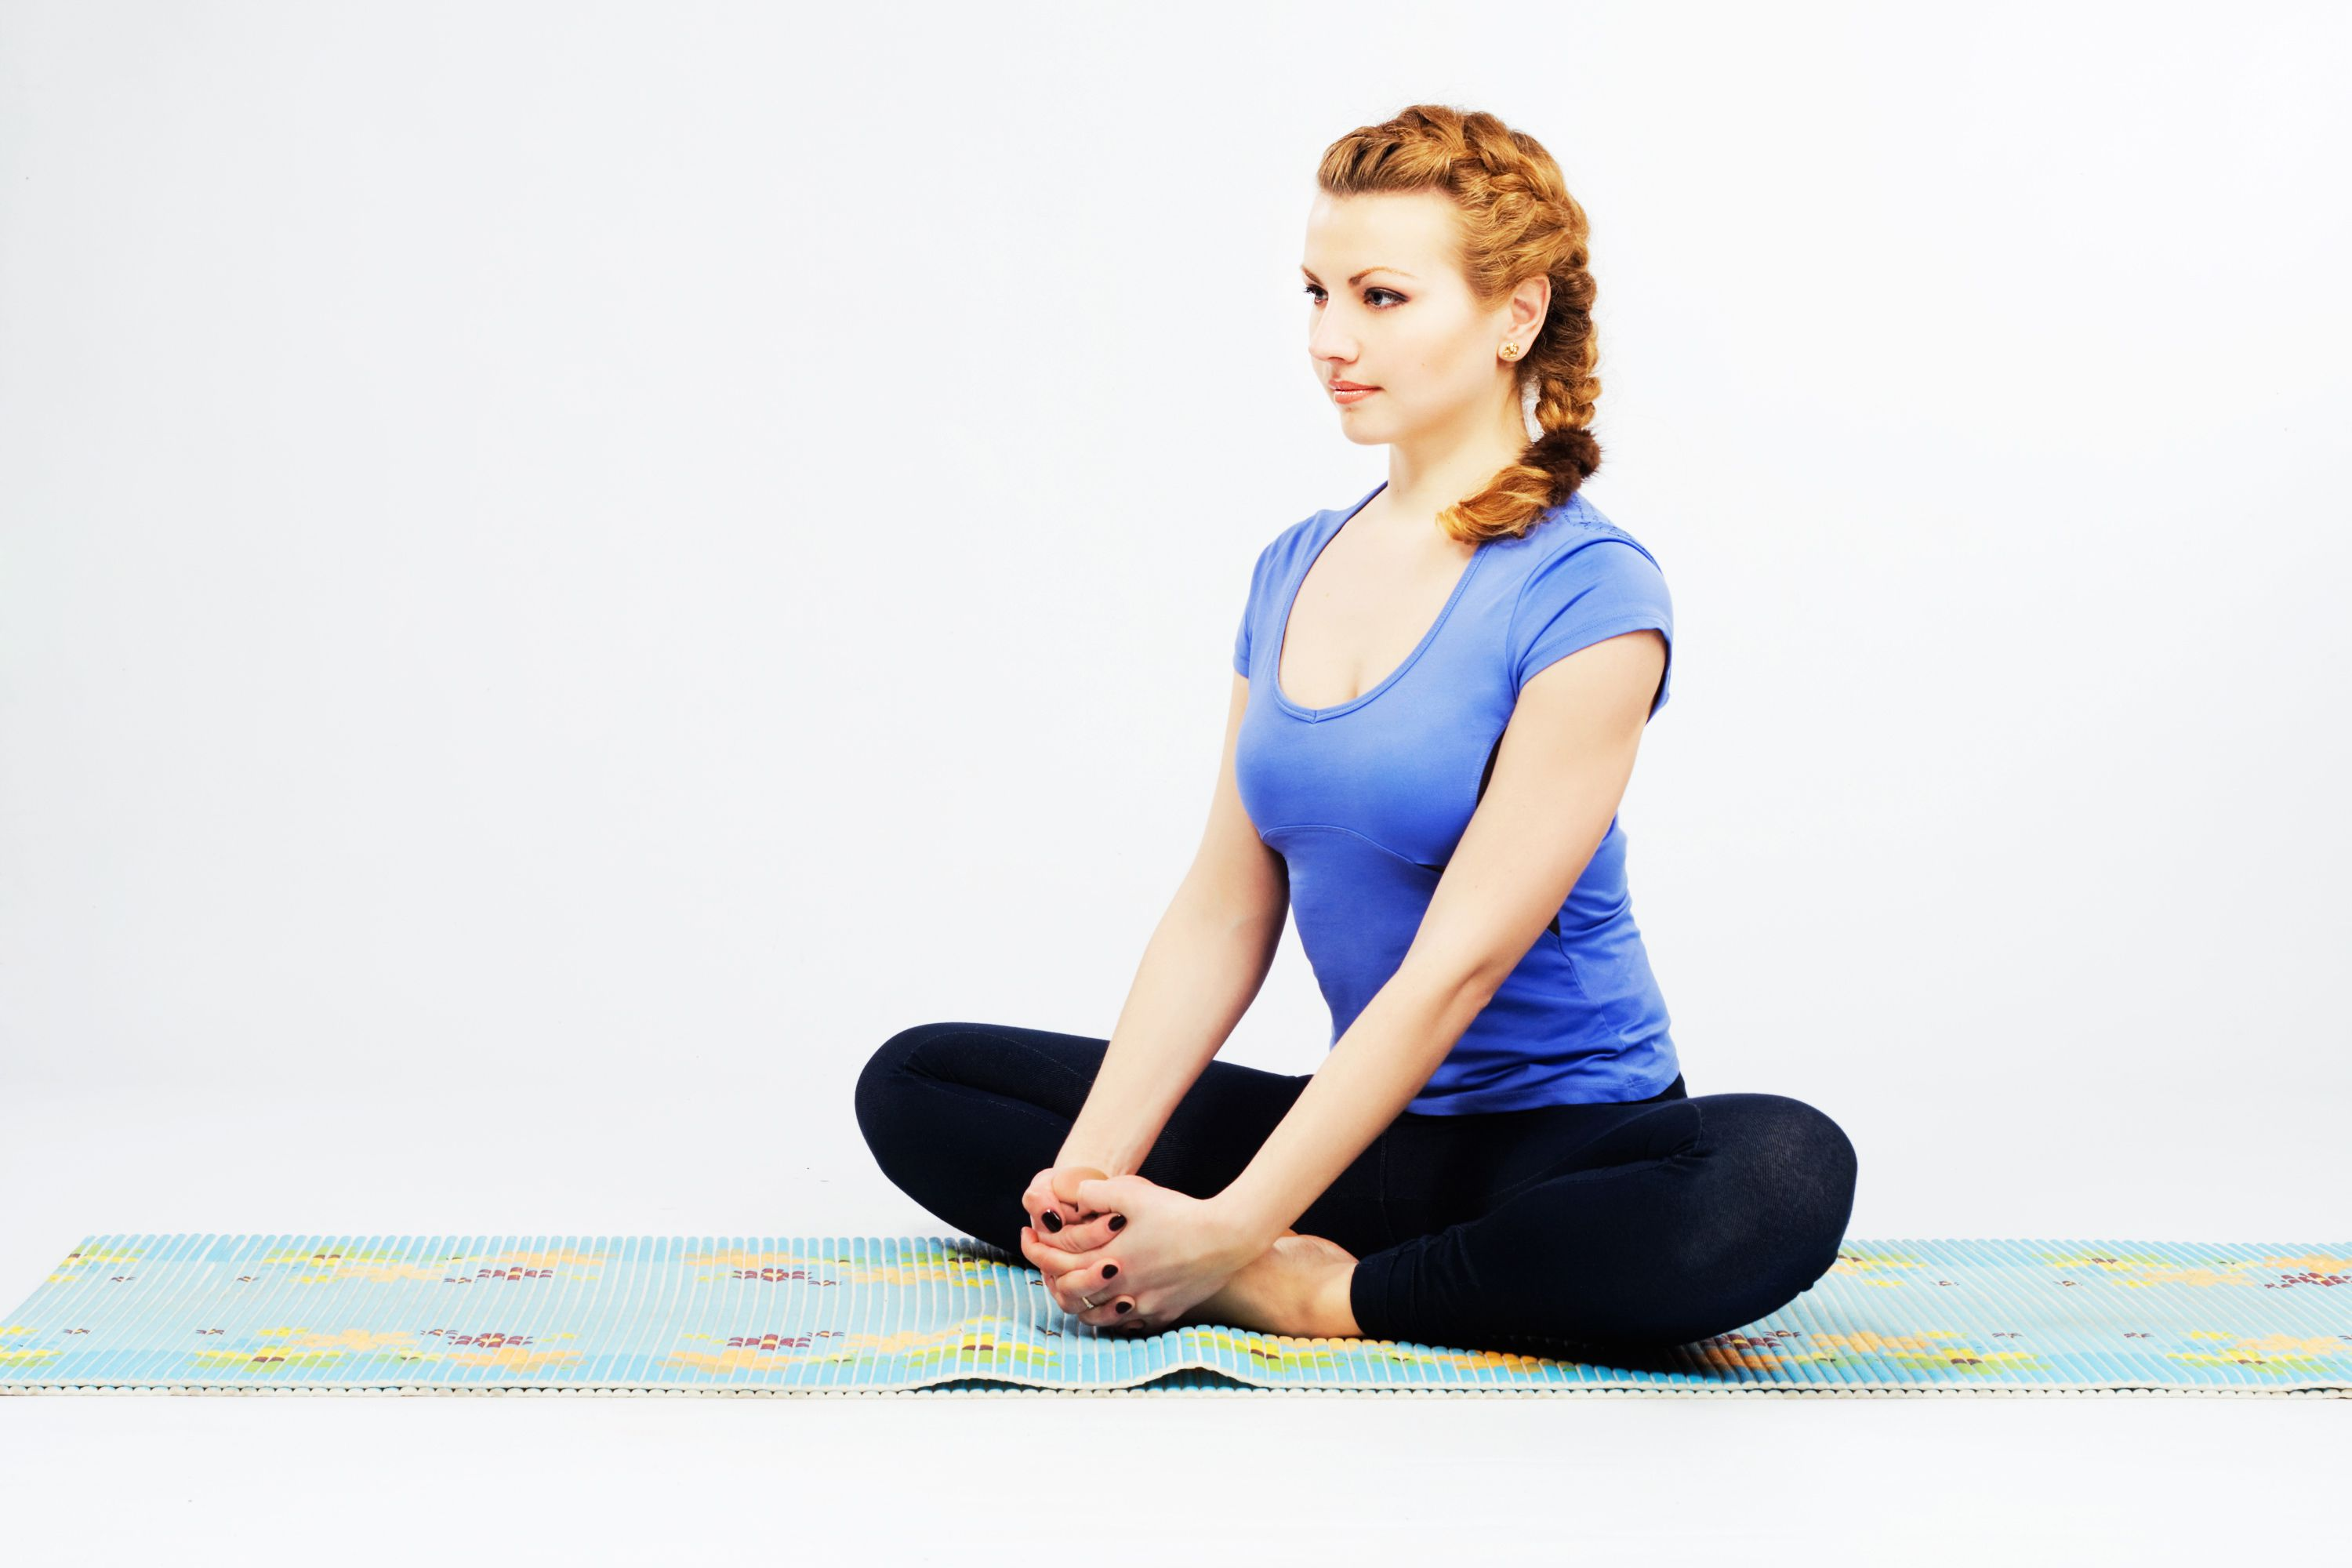 Thigh Stretches That Focus on Groin Flexibility